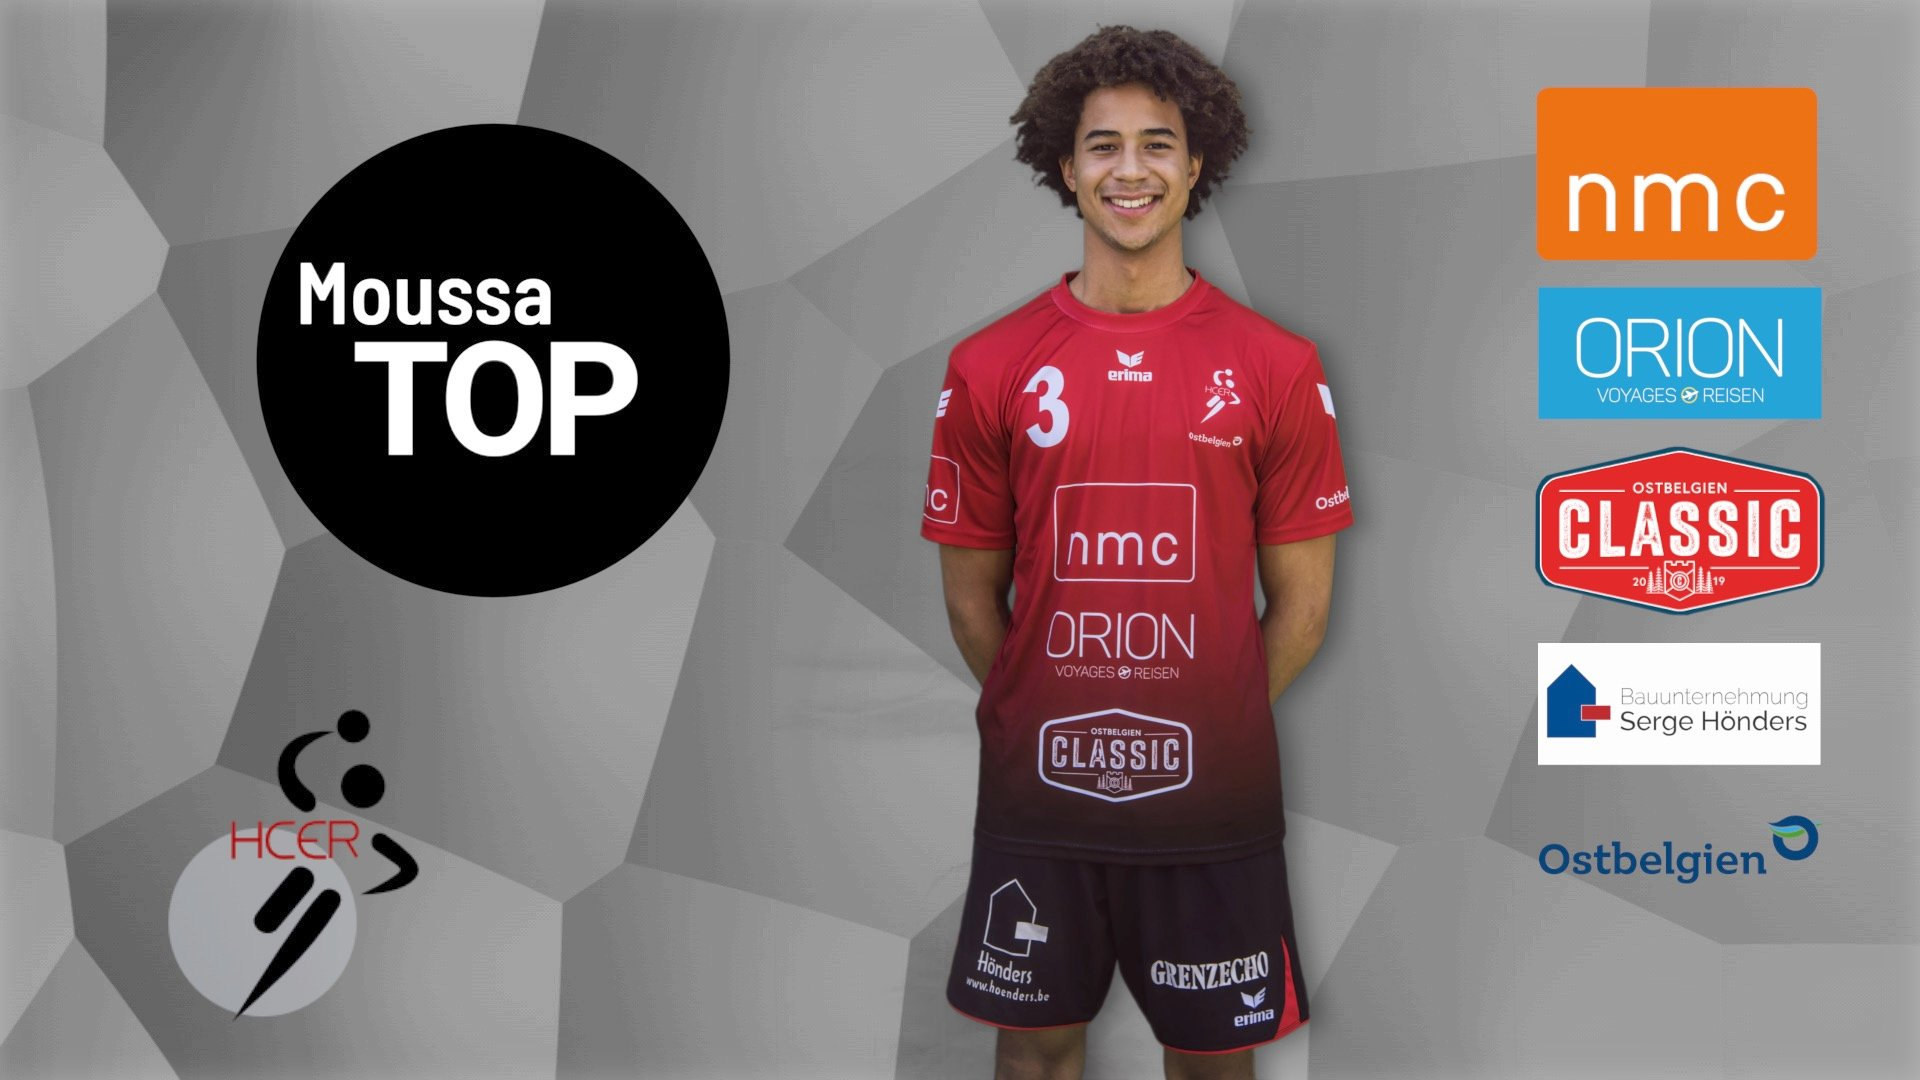 #03 Moussa Top